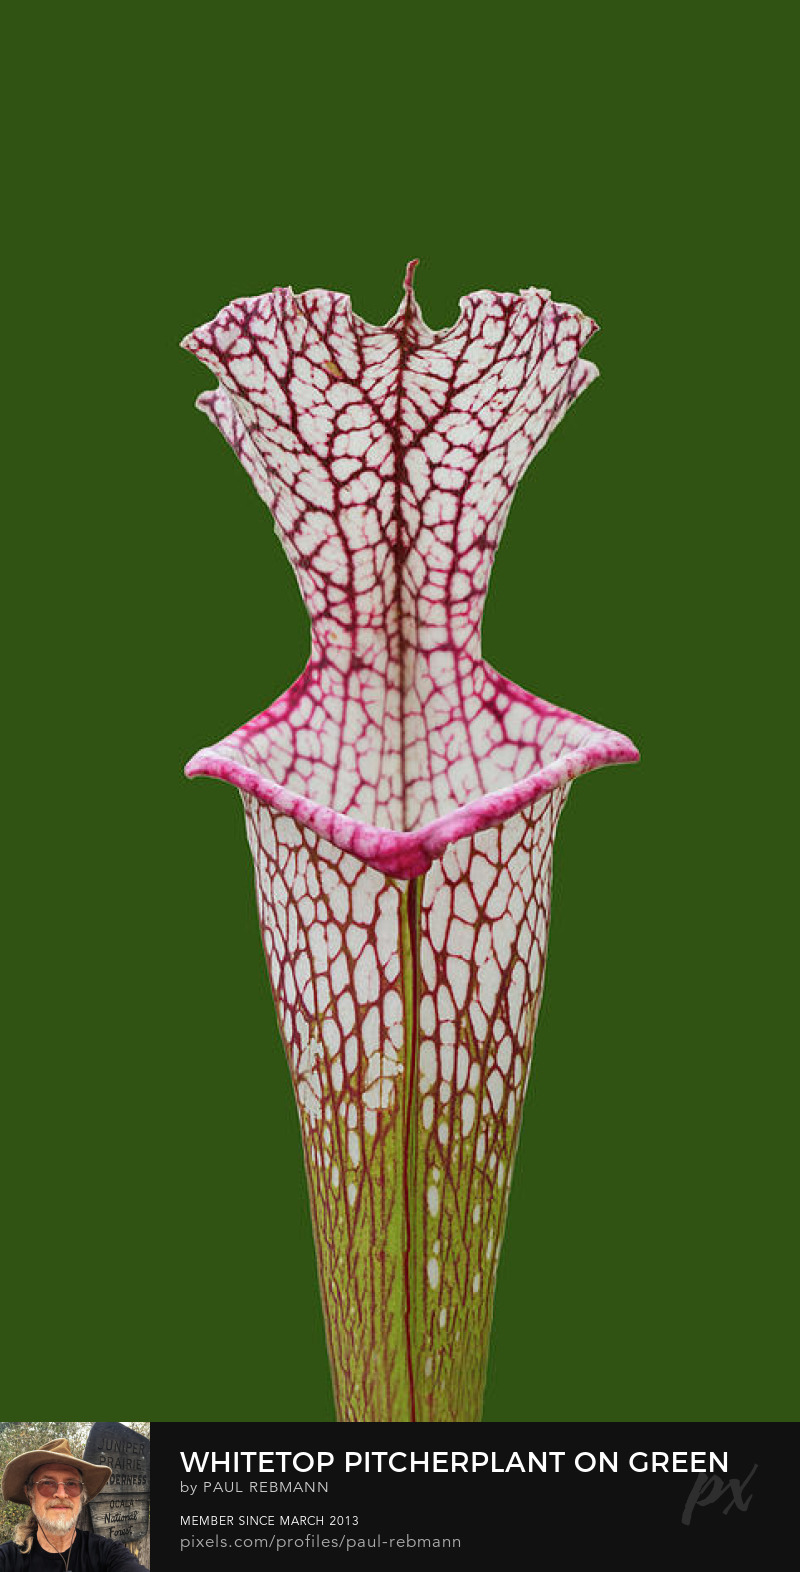 View online purchase options for Whitetop Pitcherplant on Green by Paul Rebmann